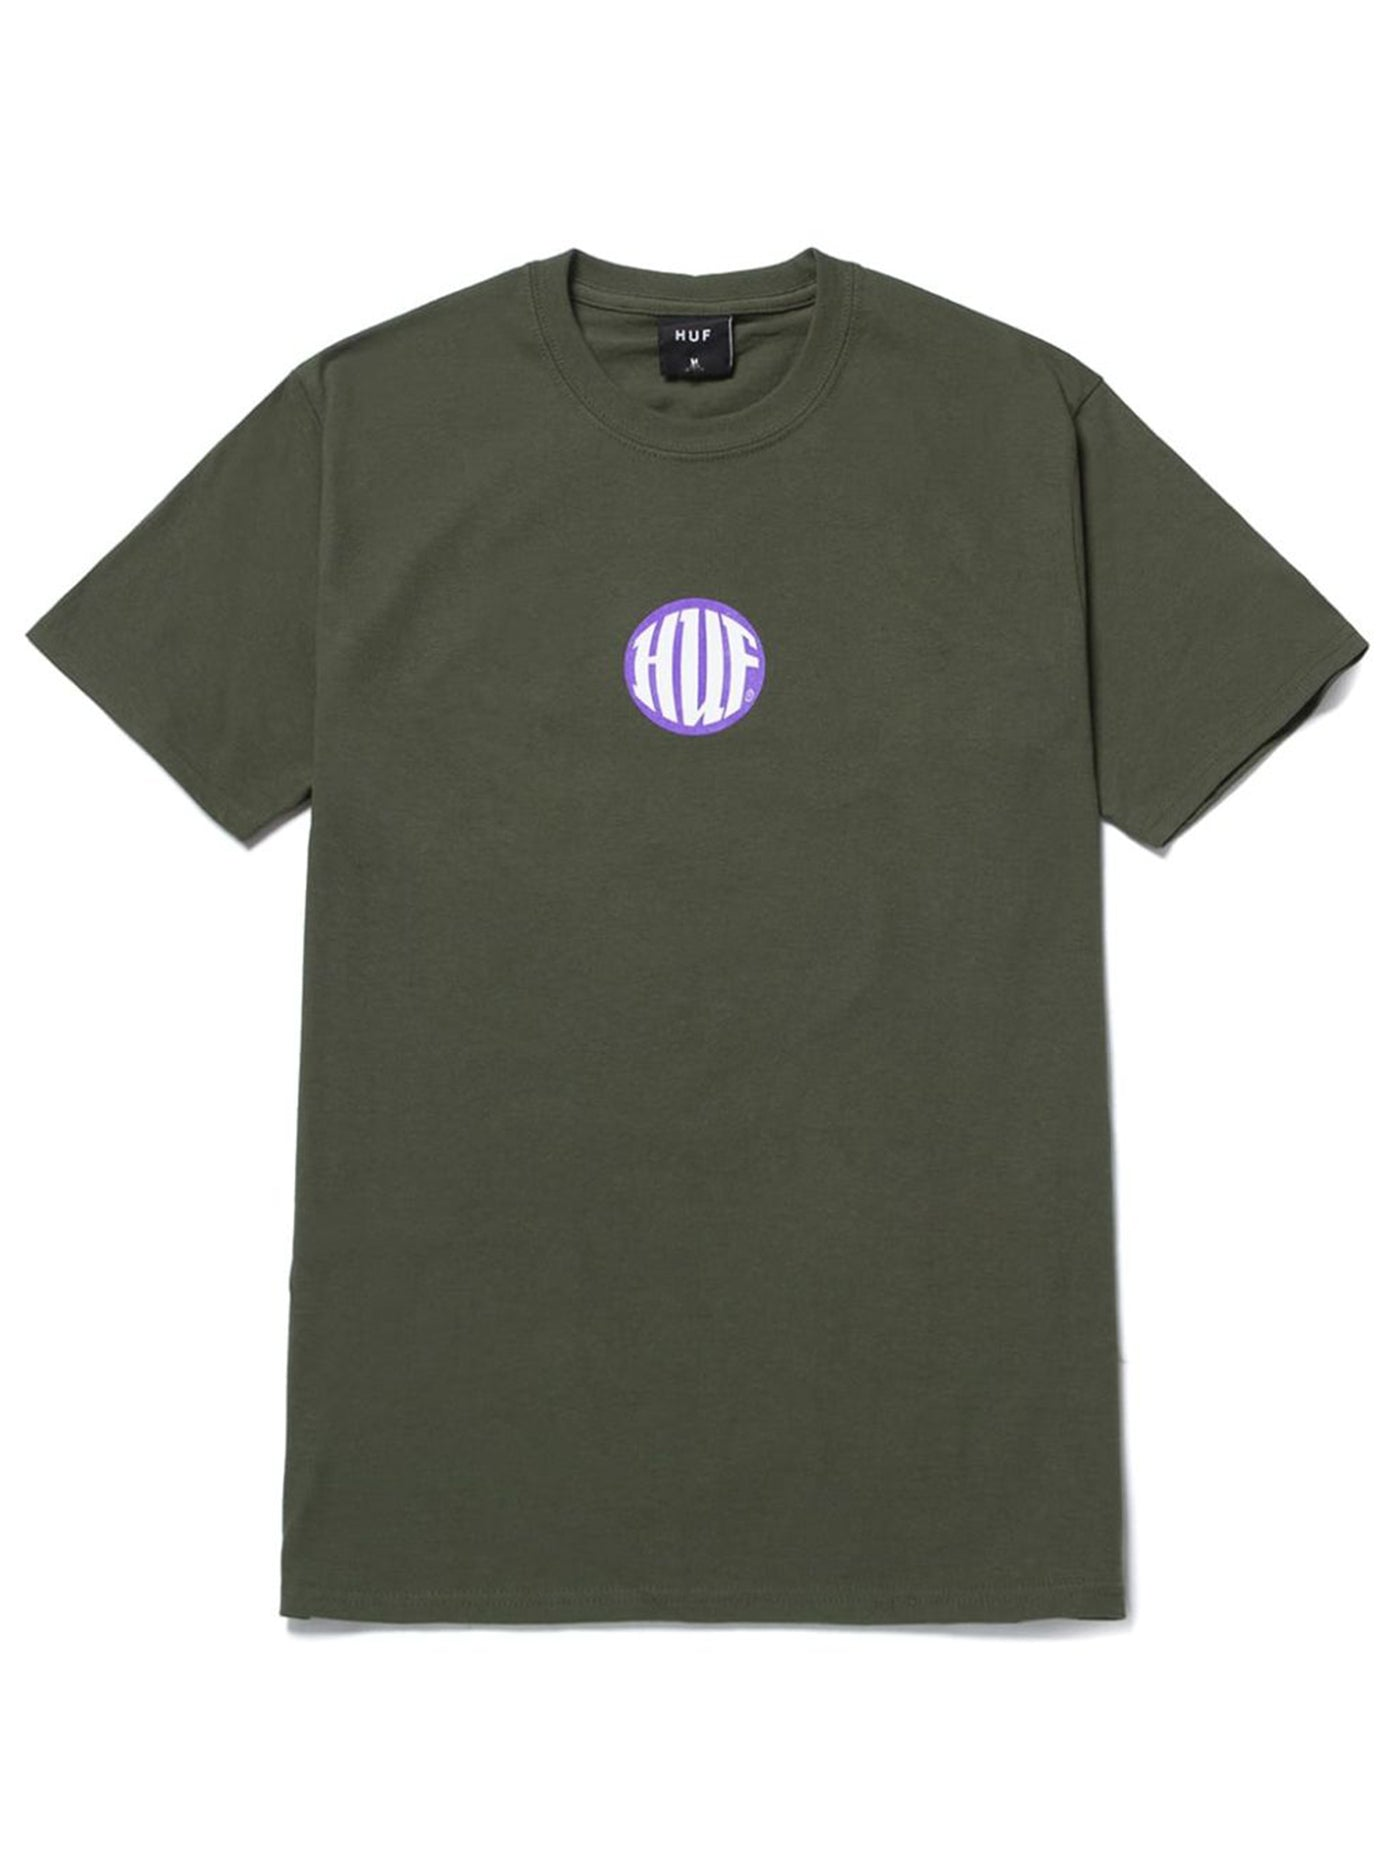 MILITARY GREEN (MIL)